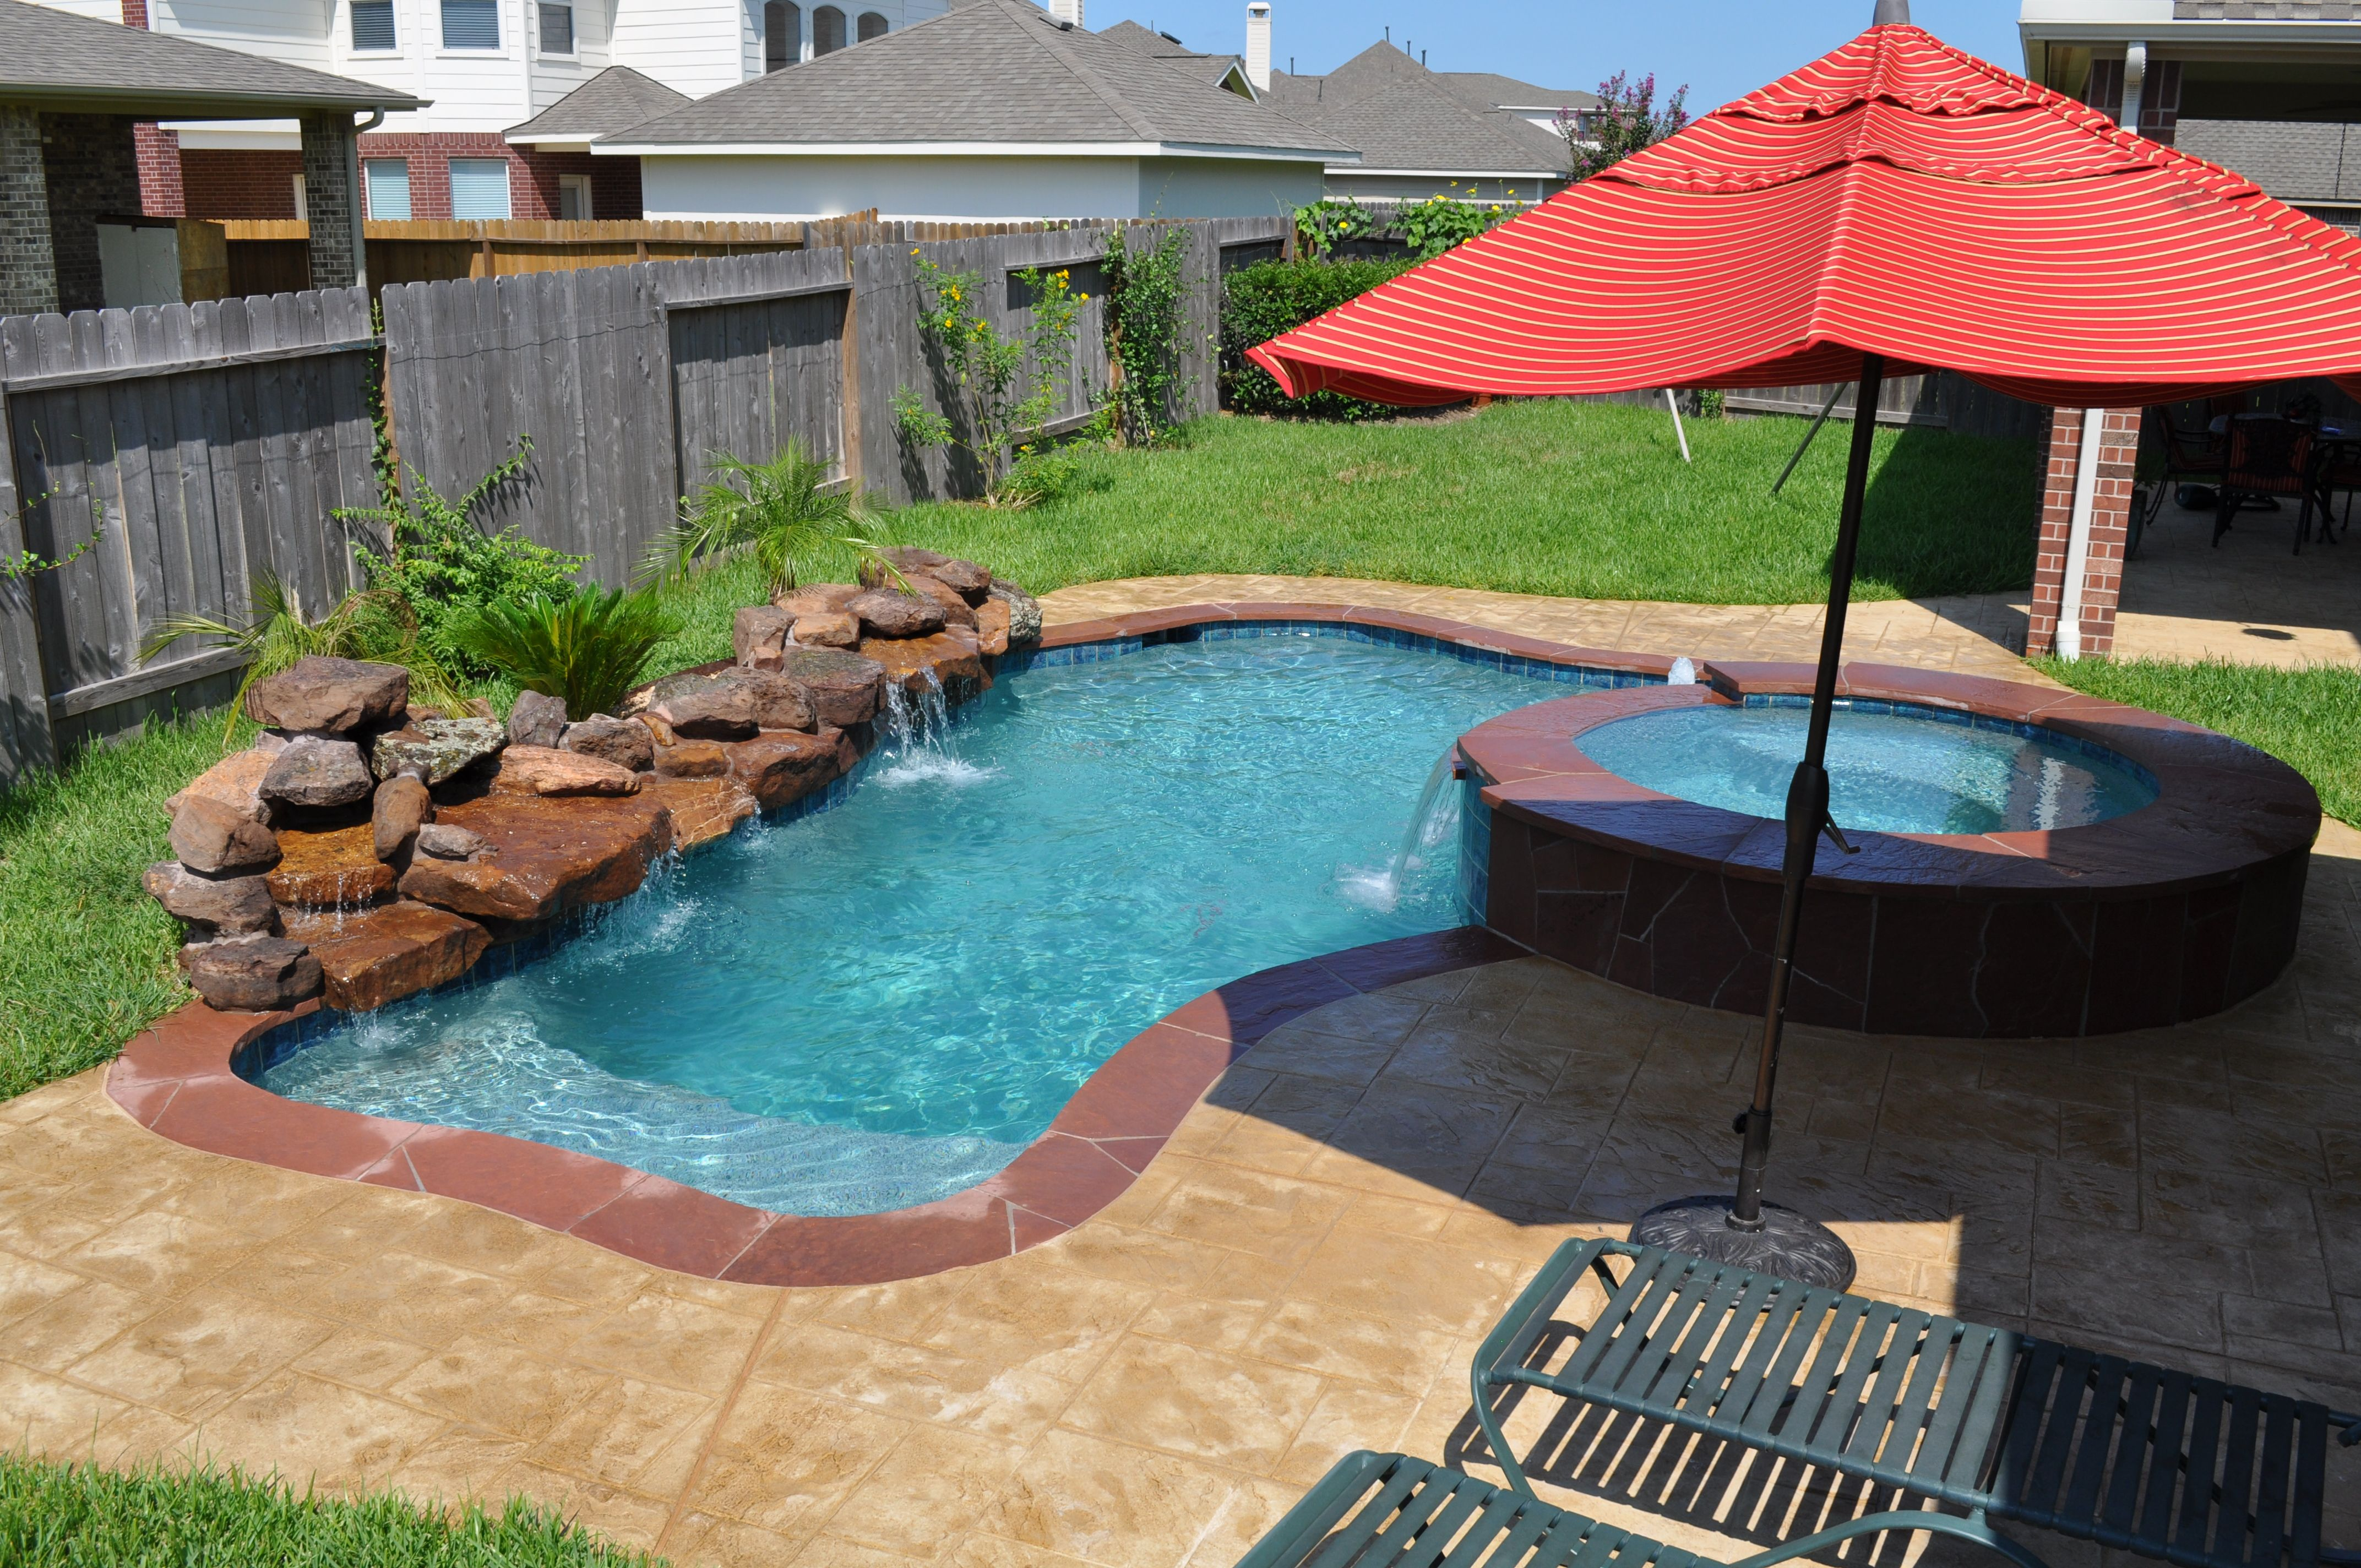 This Small Pool And Spa In Katy Tx Houston Features Stamped Overlay Concrete Deck An Ashlar Stone Pattern Waterfall Overflowing 18 Deep